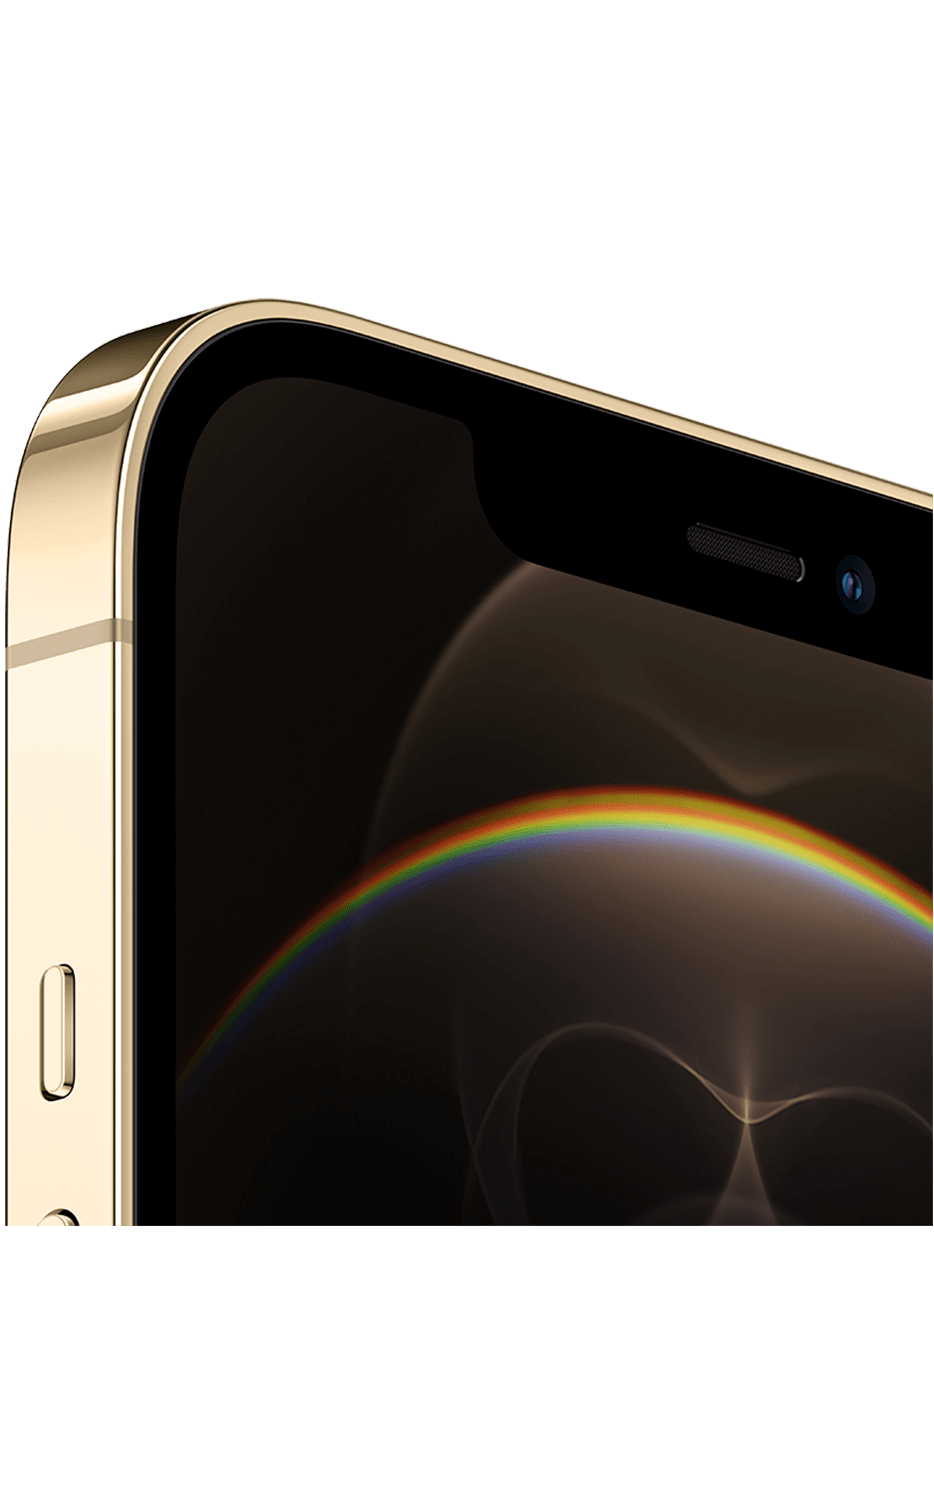 Right View iPhone 12 Pro Max Gold